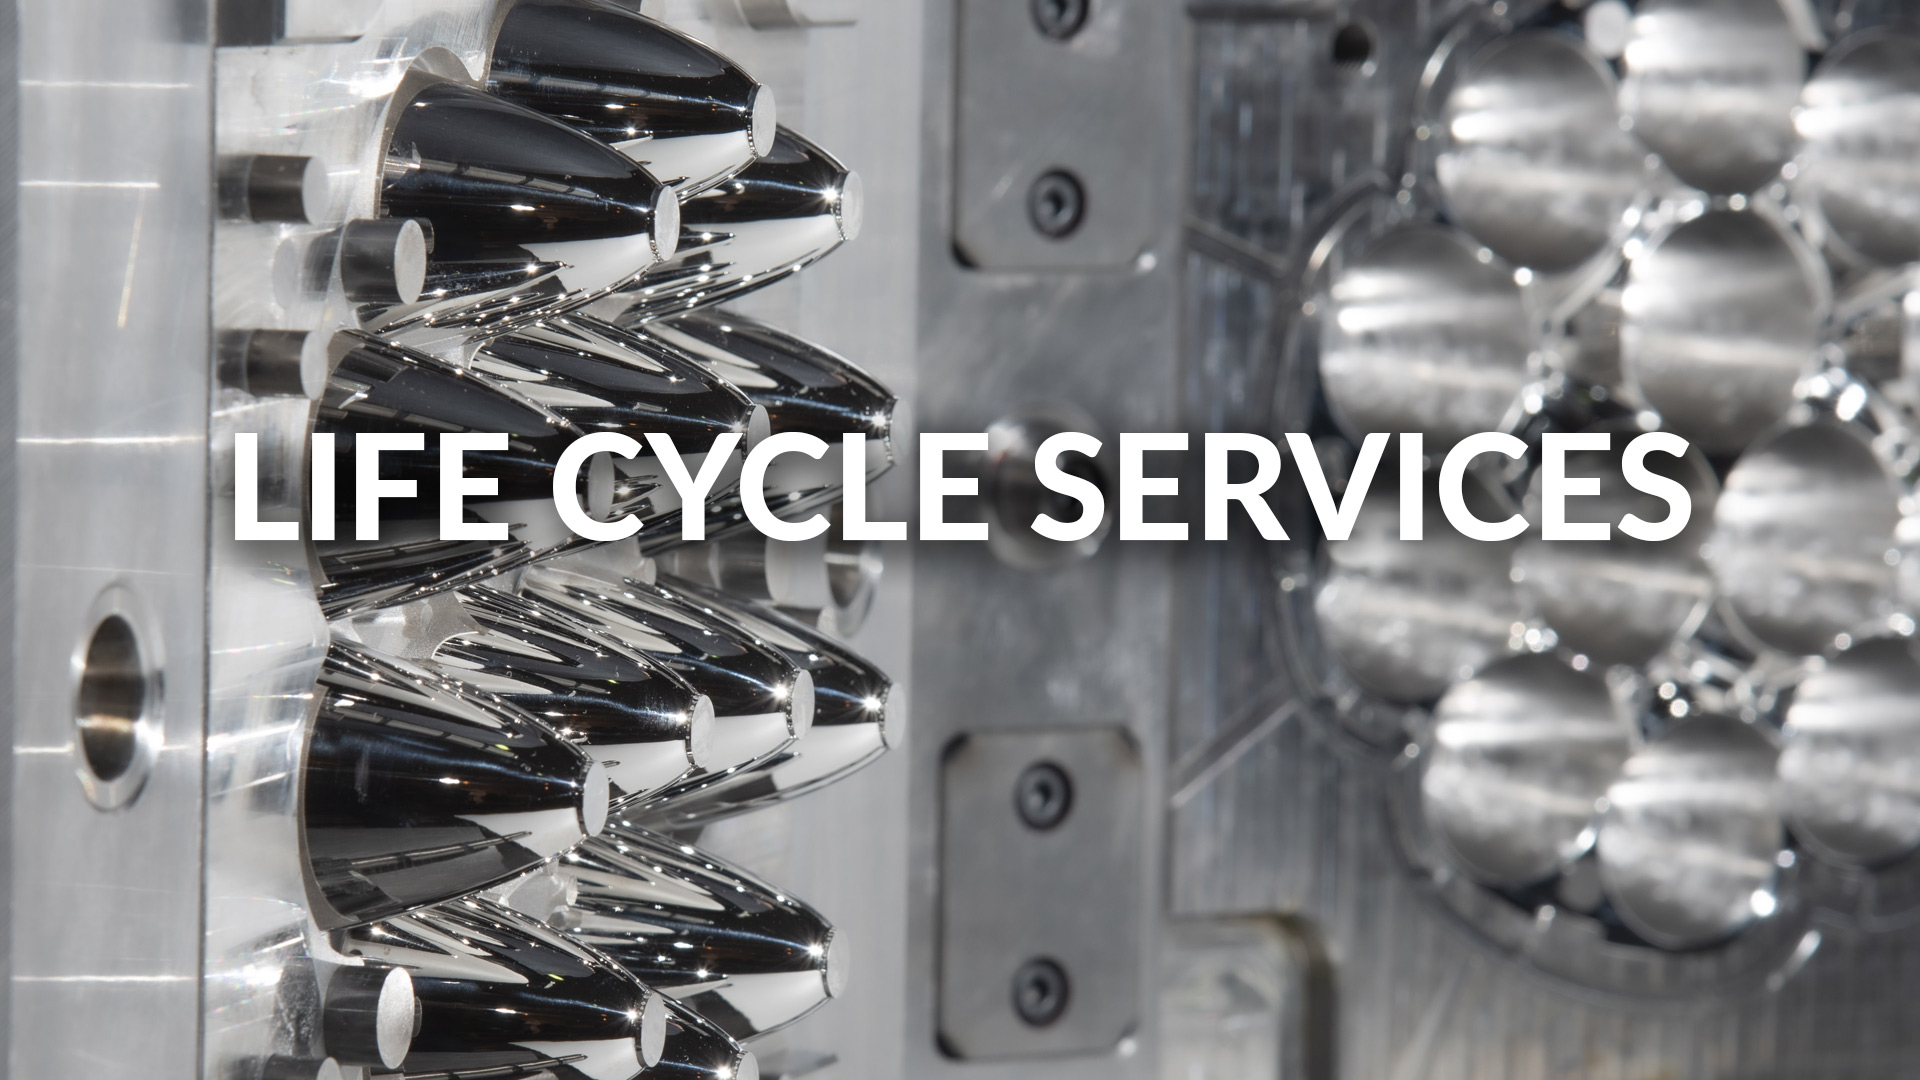 Pdat - Life Cycle Services